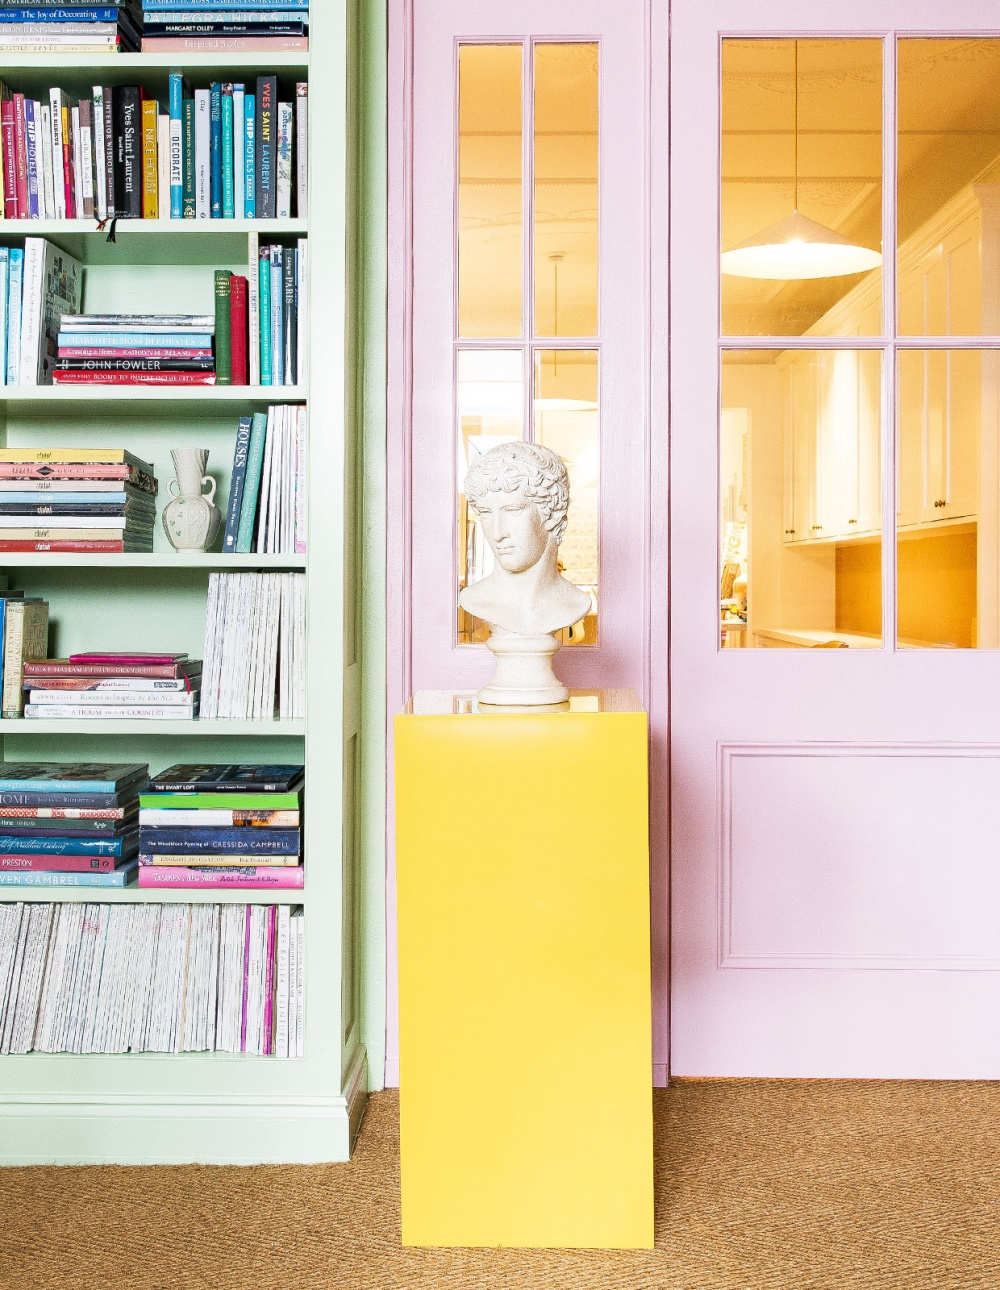 Anna Spiro Interior Design Office Worke Inspiration Brisbane Australia Pink Walls Green Bookcases Greek Bust Statue Yellow Pedestal Wall To Sisal